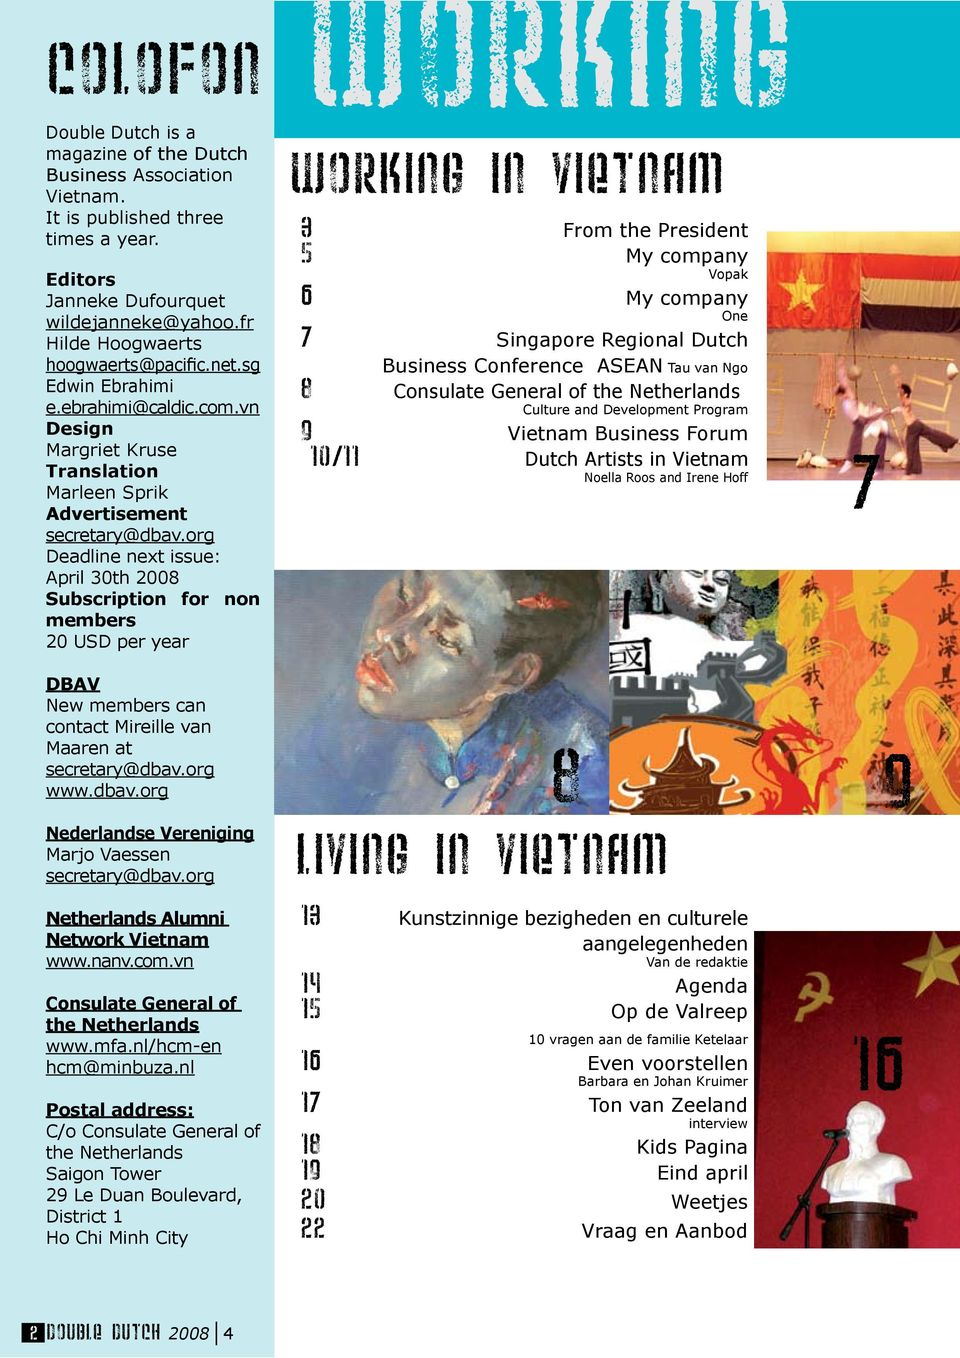 org Deadline next issue: April 30th 2008 Subscription for non members 20 USD per year working working in Vietnam 3 From the President 5 My company Vopak 6 My company One 7 Singapore Regional Dutch